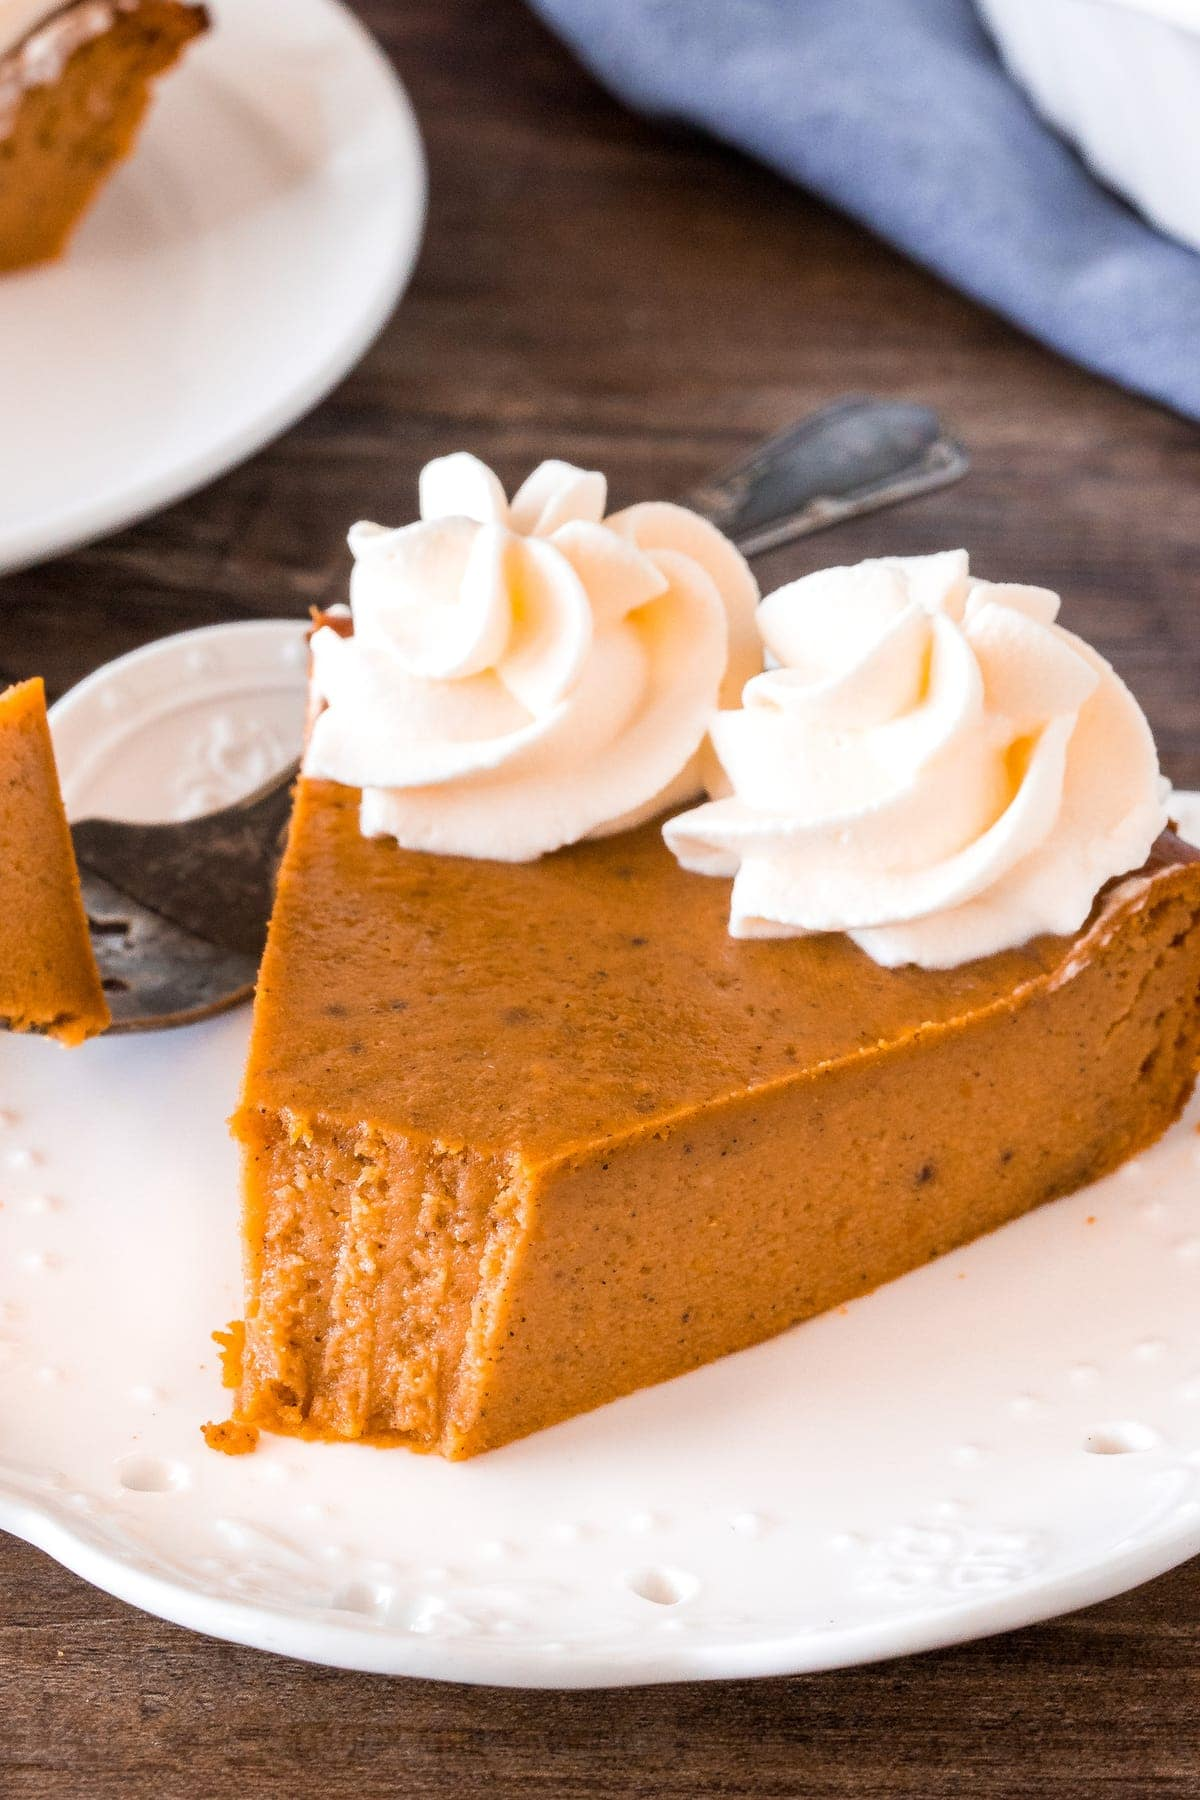 A slice of pumpkin pie without the crust.